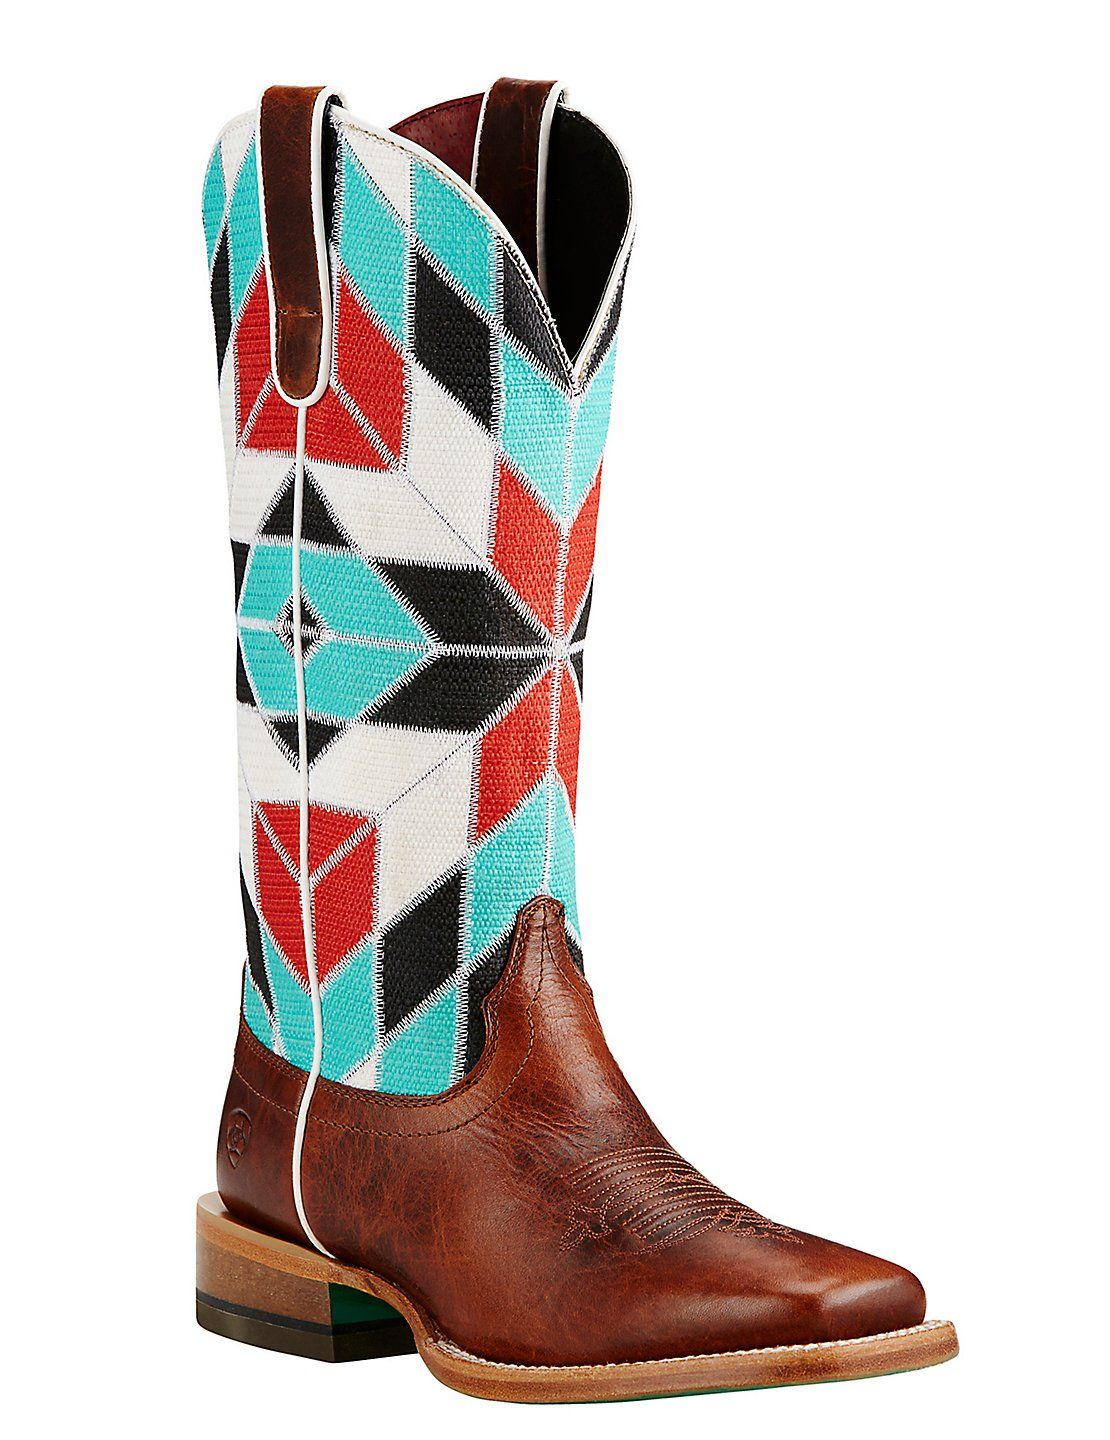 c7512e9f34f Ariat Women's Brown with Turquoise, Red, White, and Black Multi ...